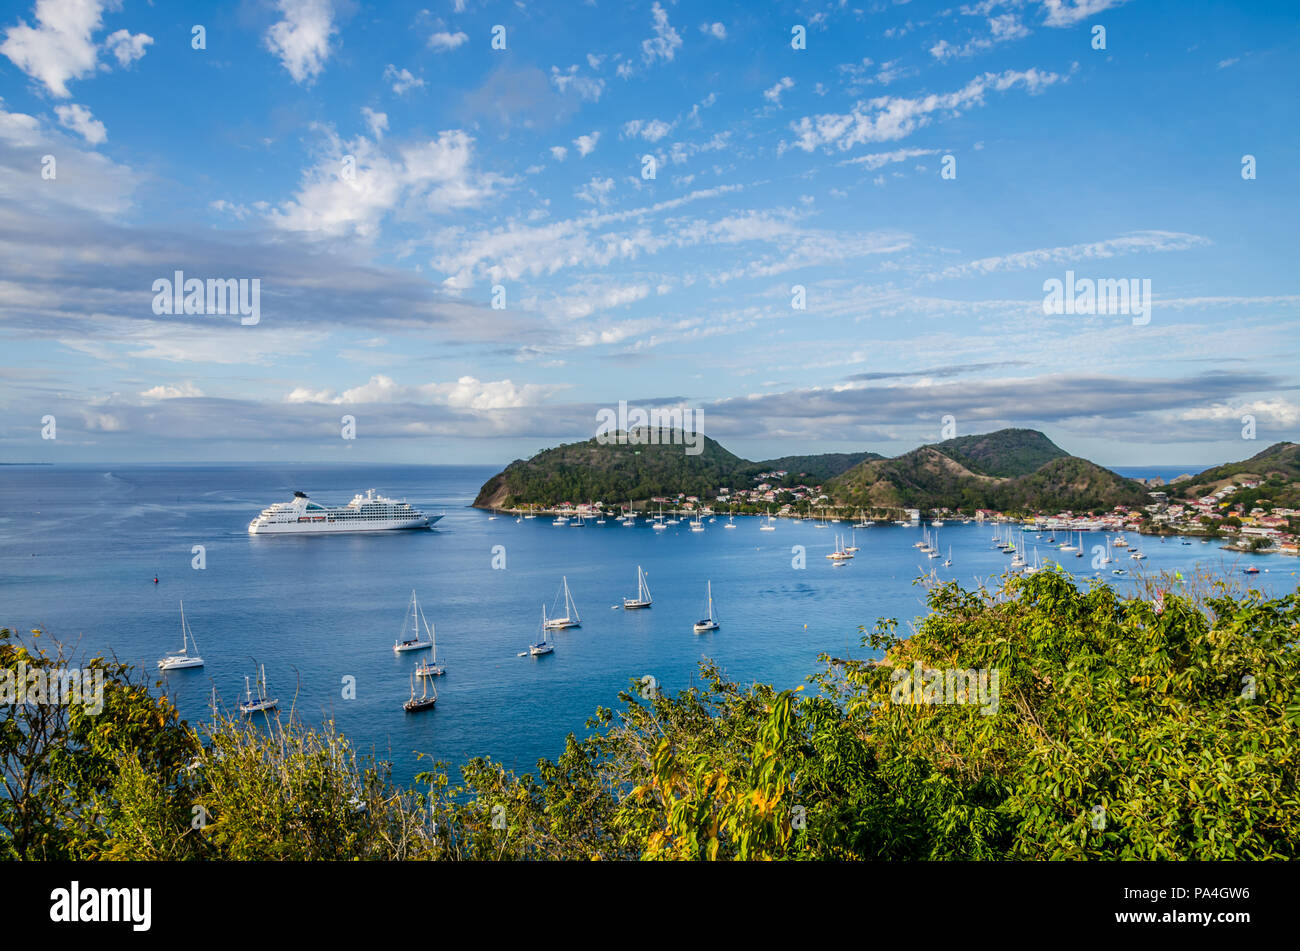 Les Saintes from Guadeloupe island one of the Most Beautiful Bays of the World - Stock Image